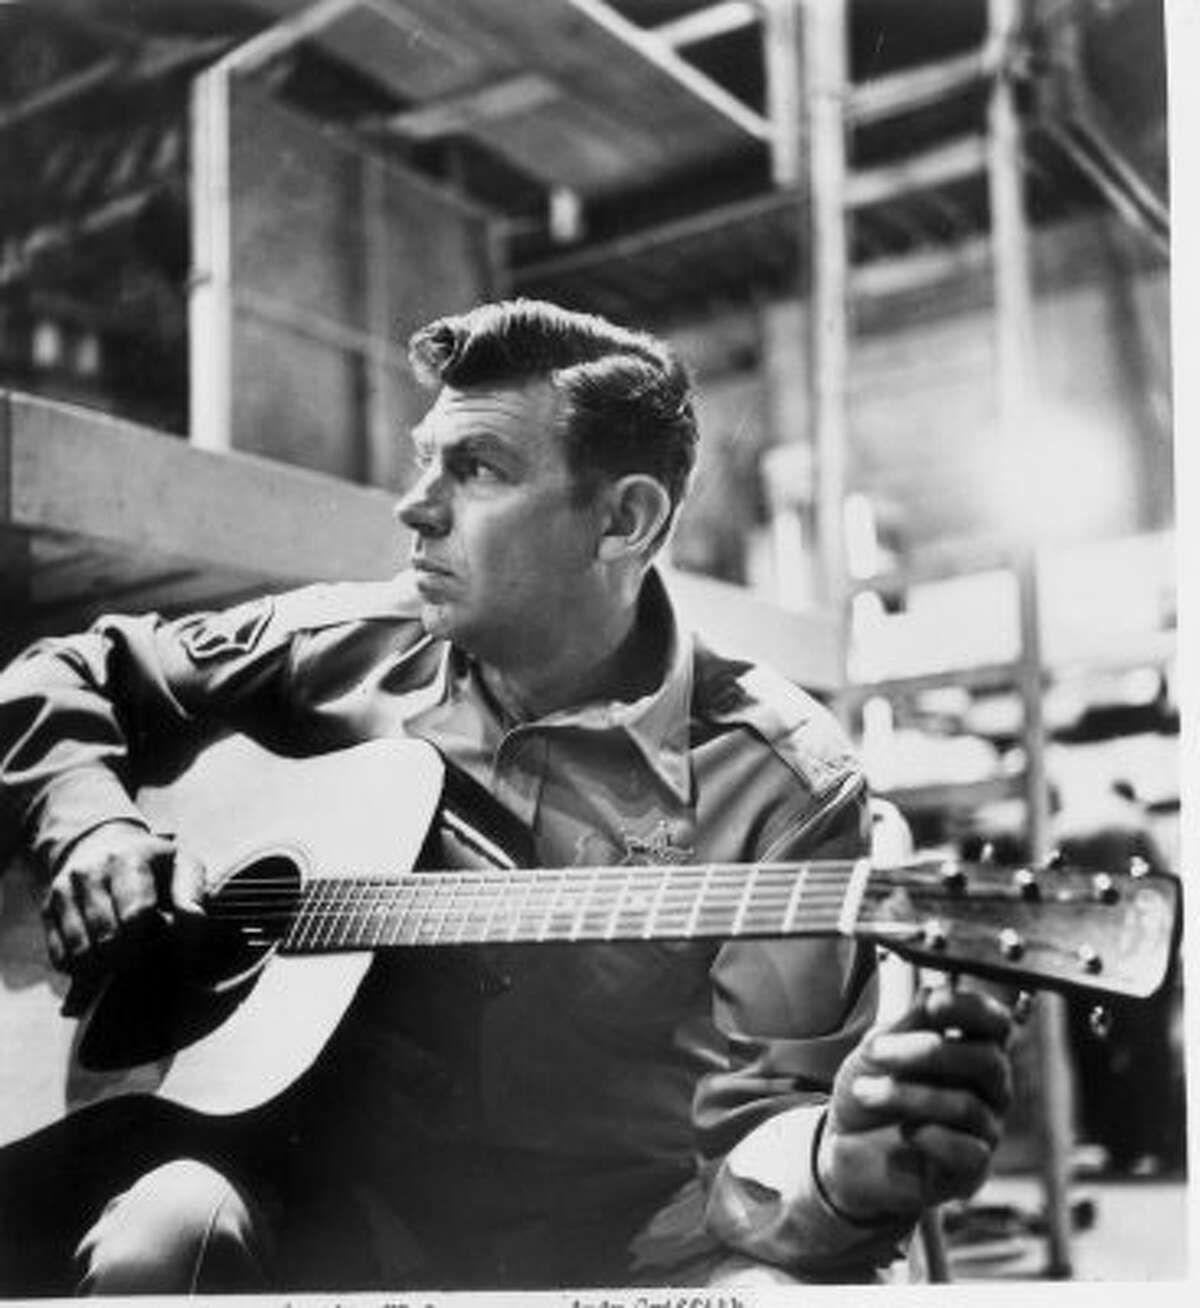 Andy Griffith in a May 1965 file photo. HOUCHRON CAPTION (06/21/1998): Andy Griffith, who occasionally played the guitar on his shows, had planned on a music career.